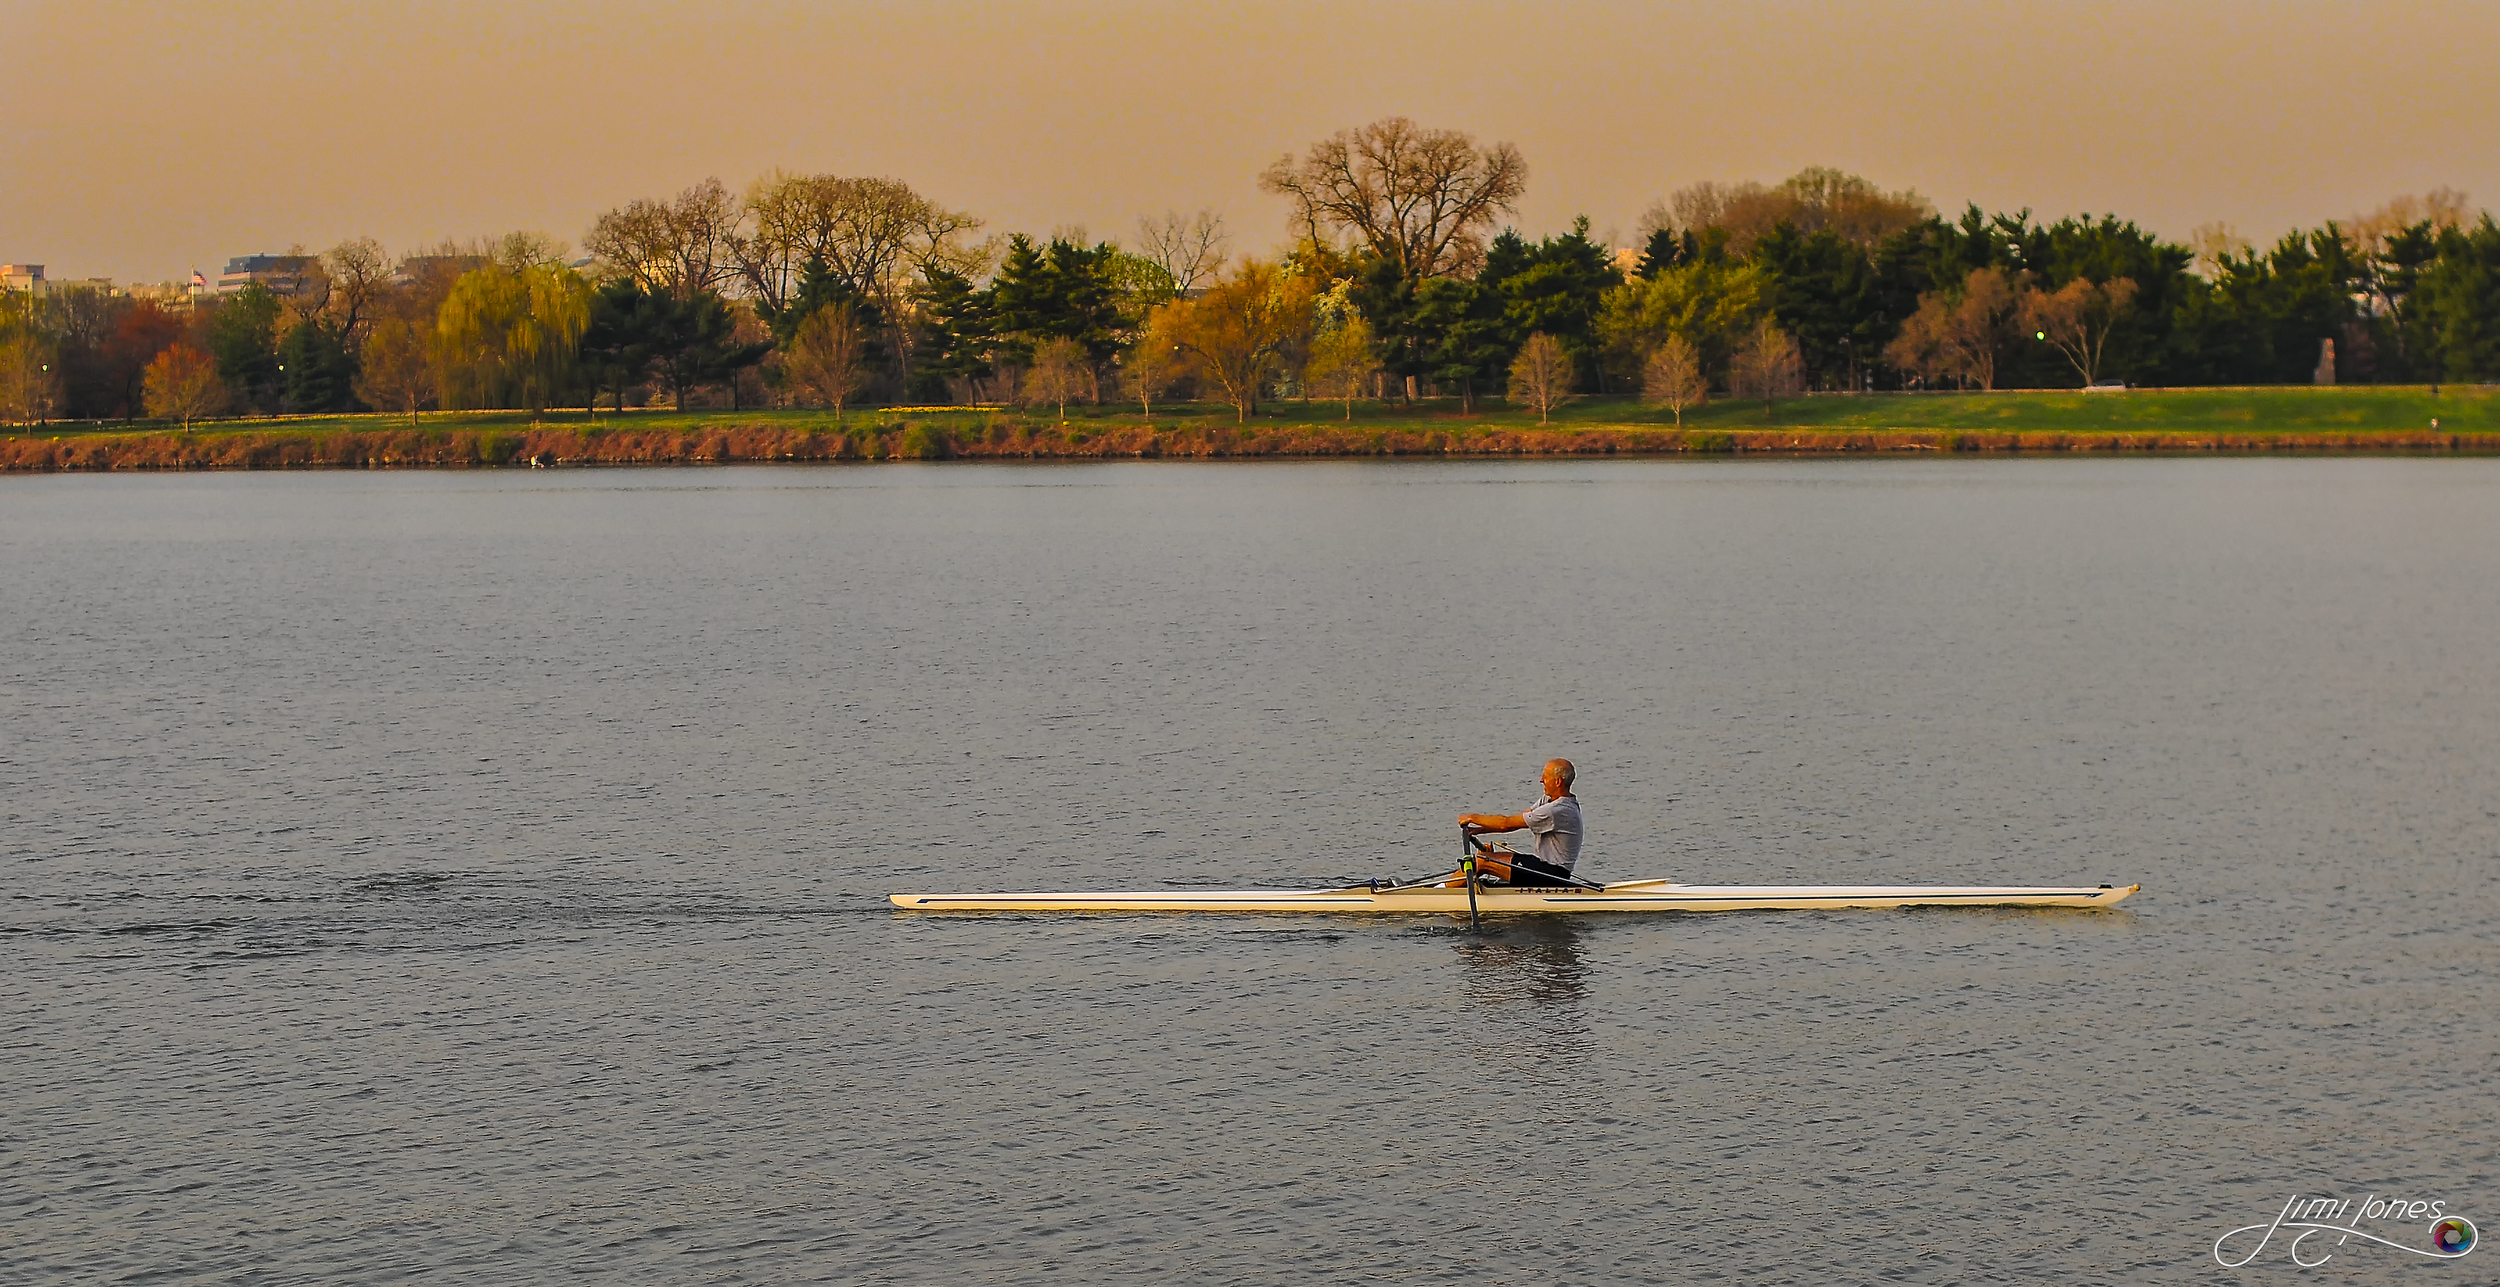 Rowing the Potomac River between Washington DC and Arlington Virginia.